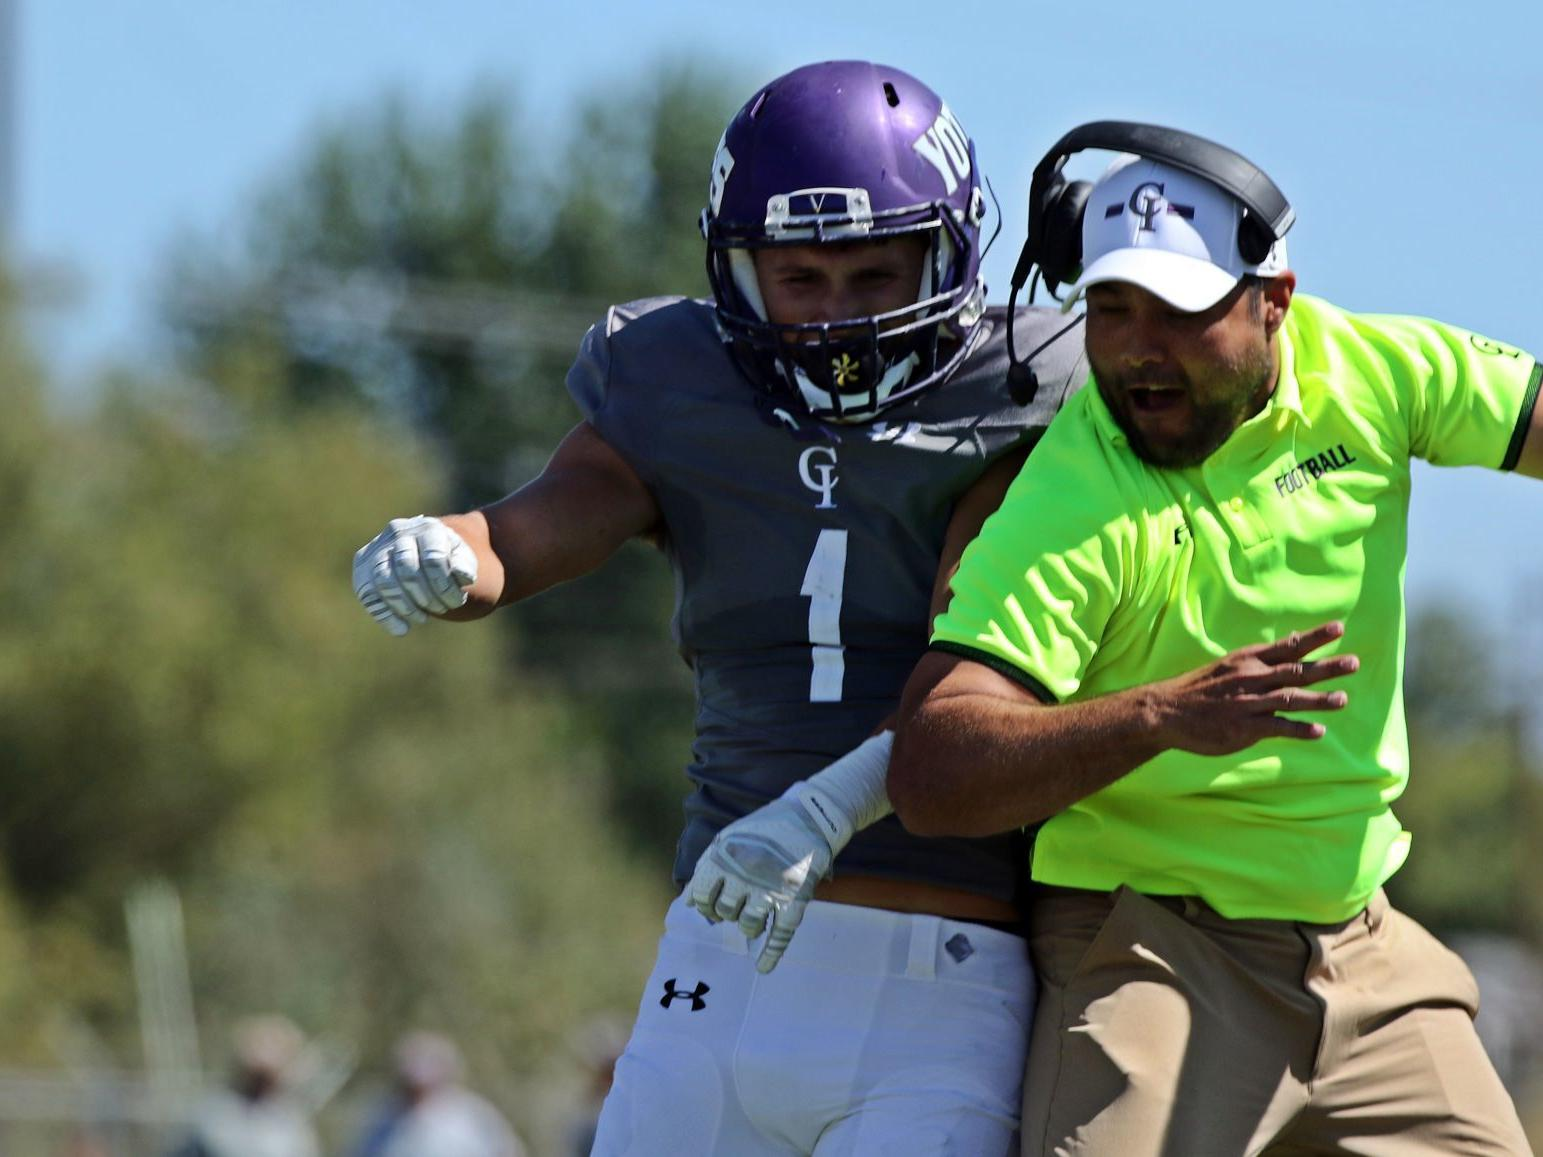 Notebook College Of Idaho S Alesi Records First Interception In A Long Time Idaho College Sports Coverage Idahopress Com